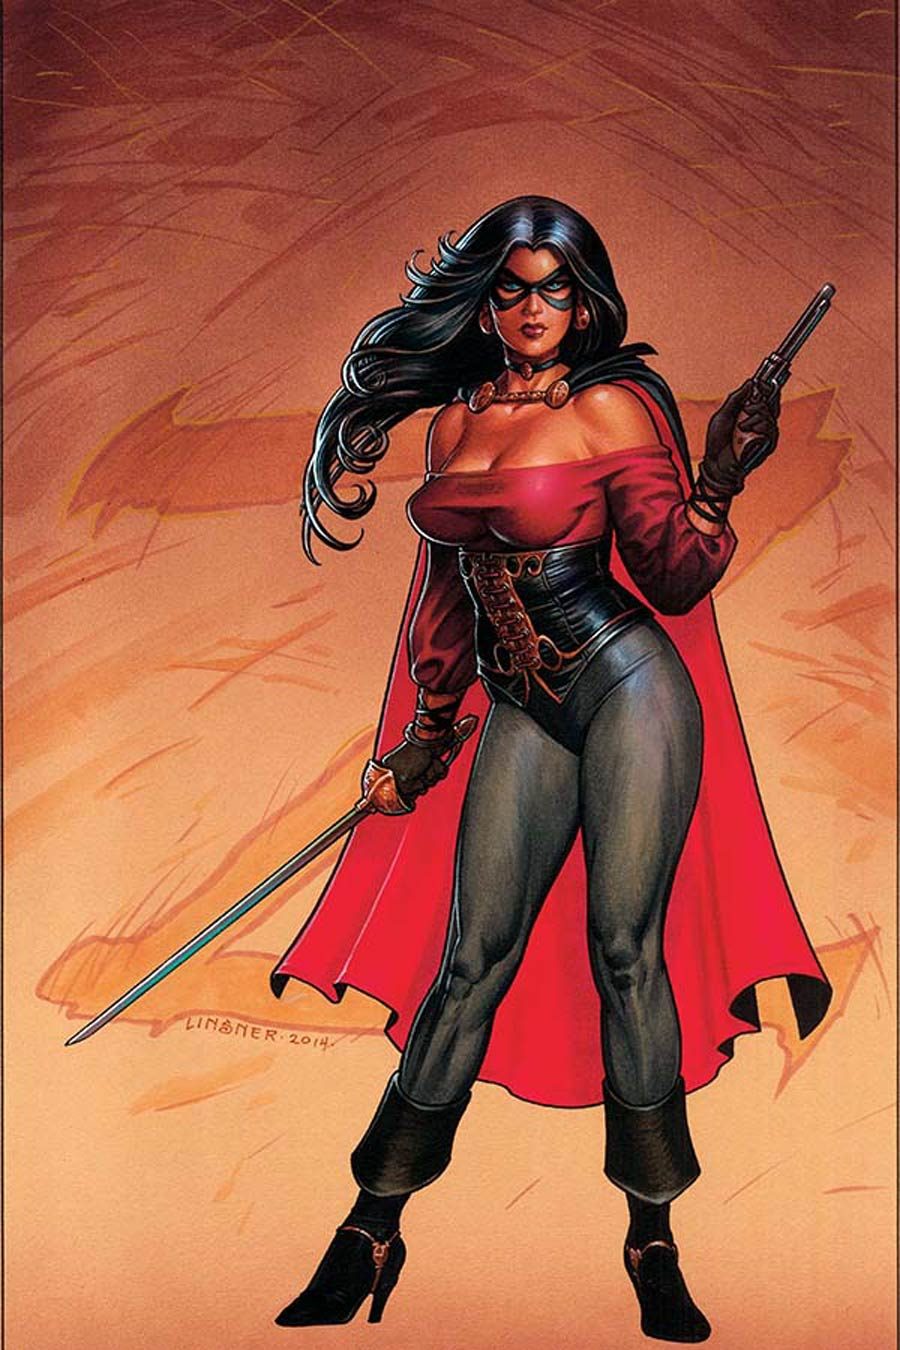 Lady Zorro #1 Cover E High-End Joseph Michael Linsner Virgin Art Ultra-Limited Variant Cover (ONLY 50 COPIES IN EXISTENCE!)